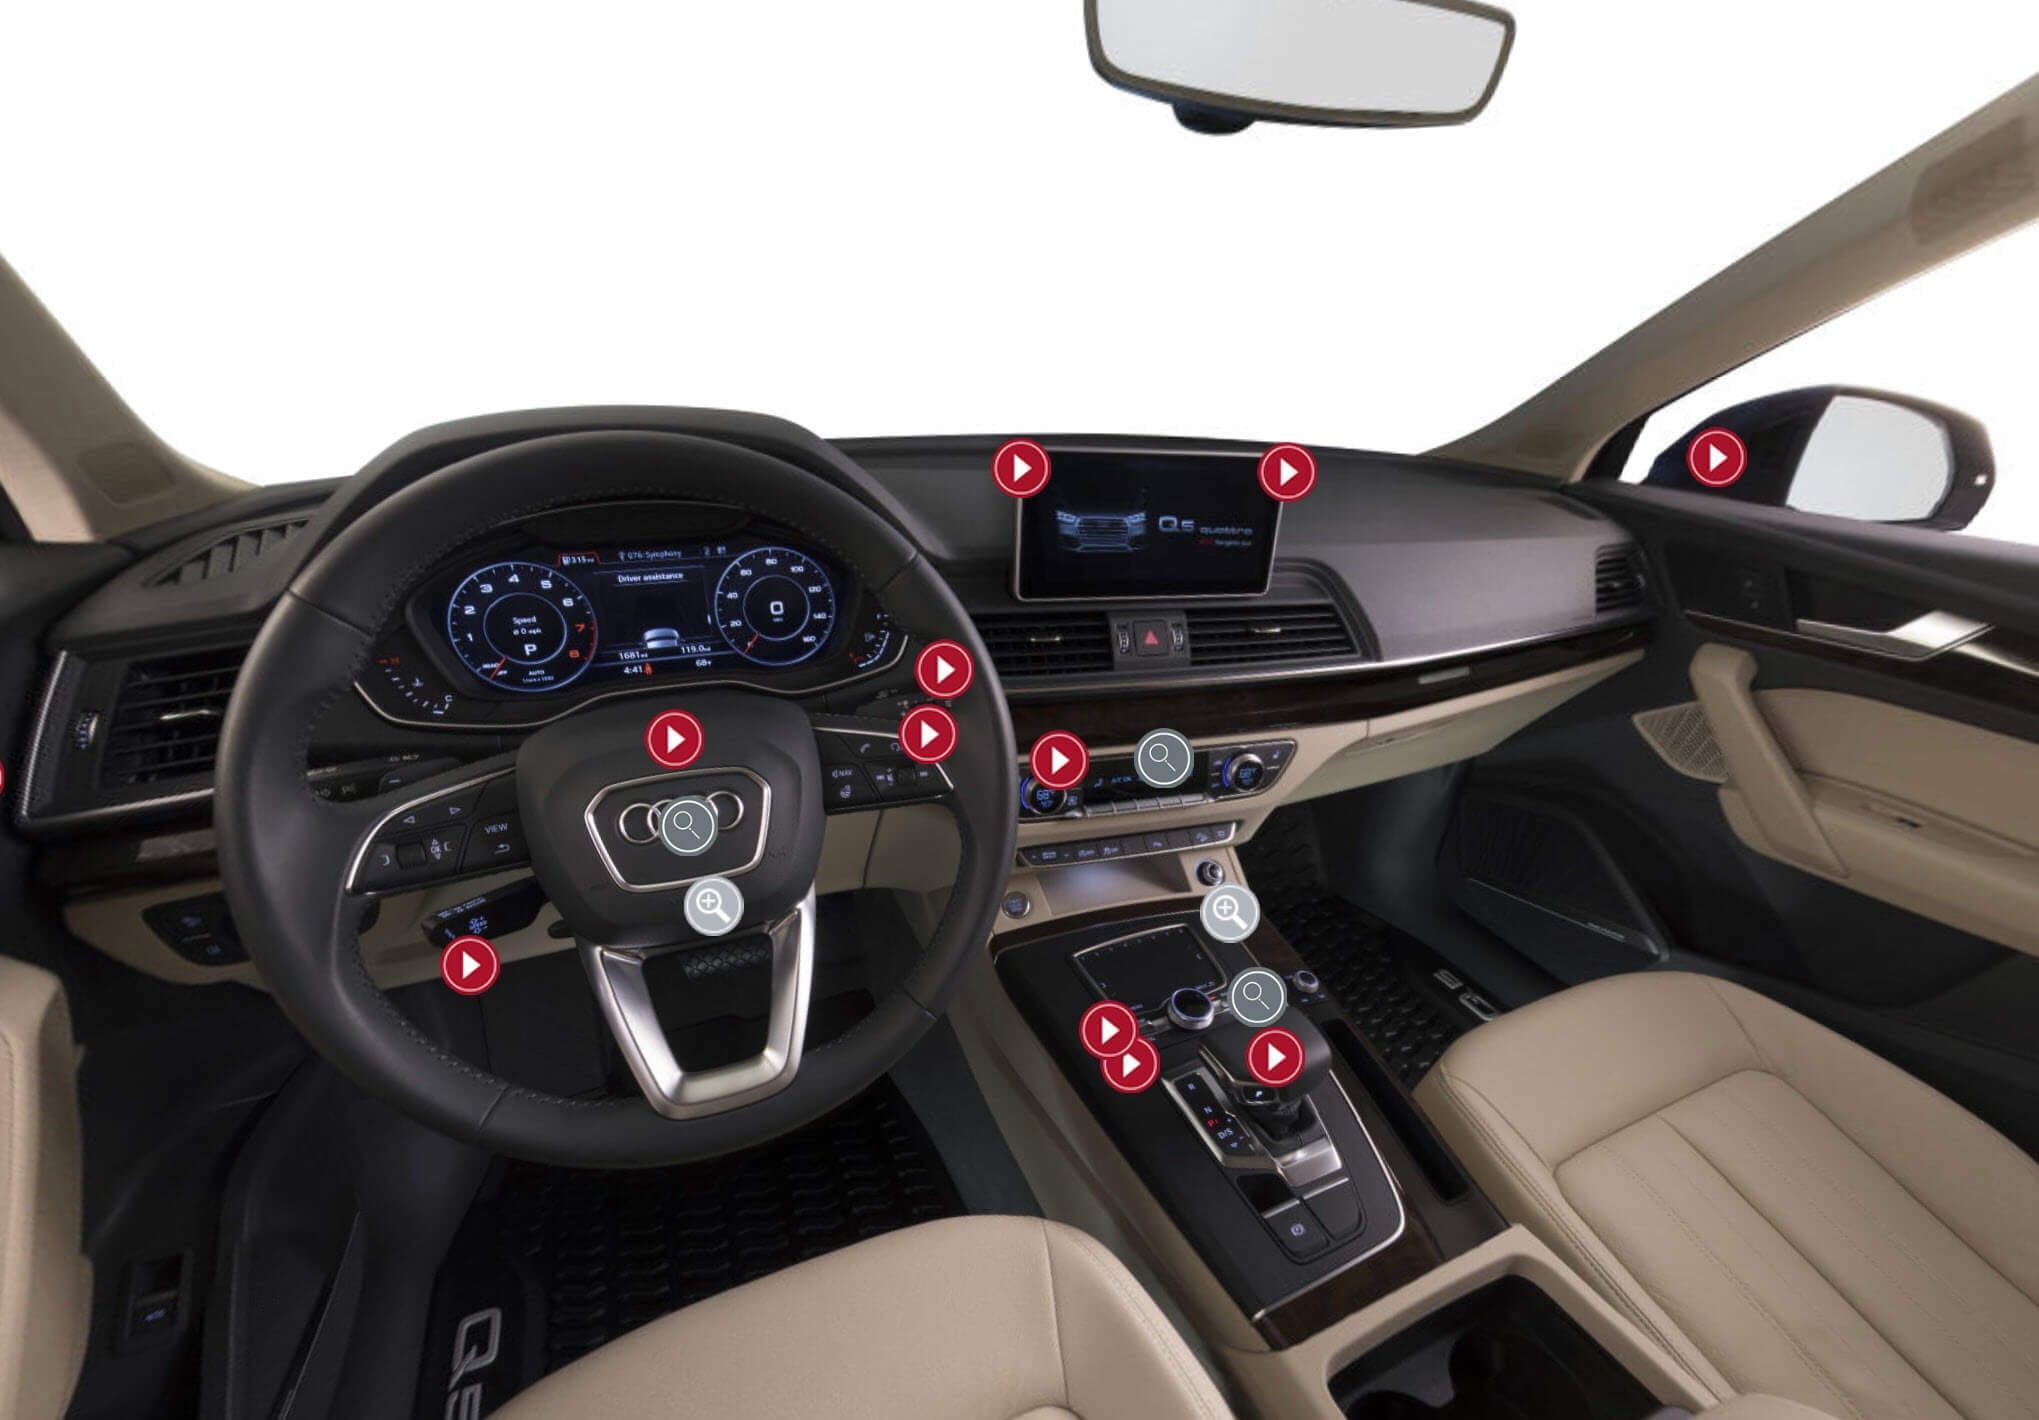 Image of hotspots on the interior of an Audi, demonstrating the Audi IQ functionality.